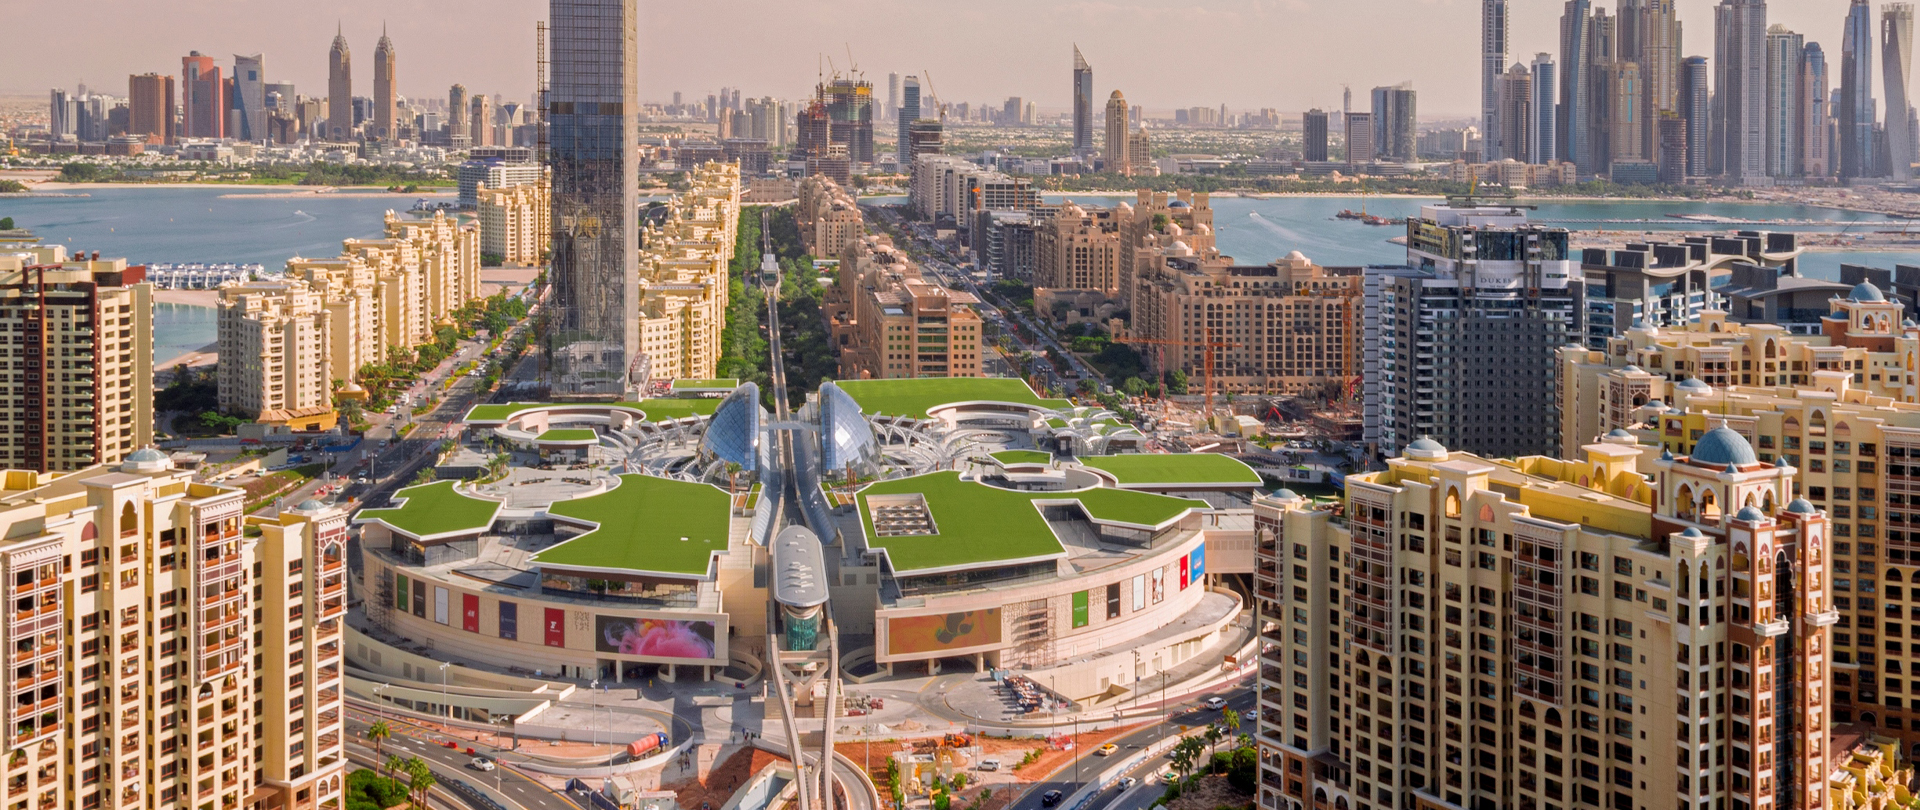 Nakheel Mall on Dubai's Palm Jumeirah to open on 28 November 2019